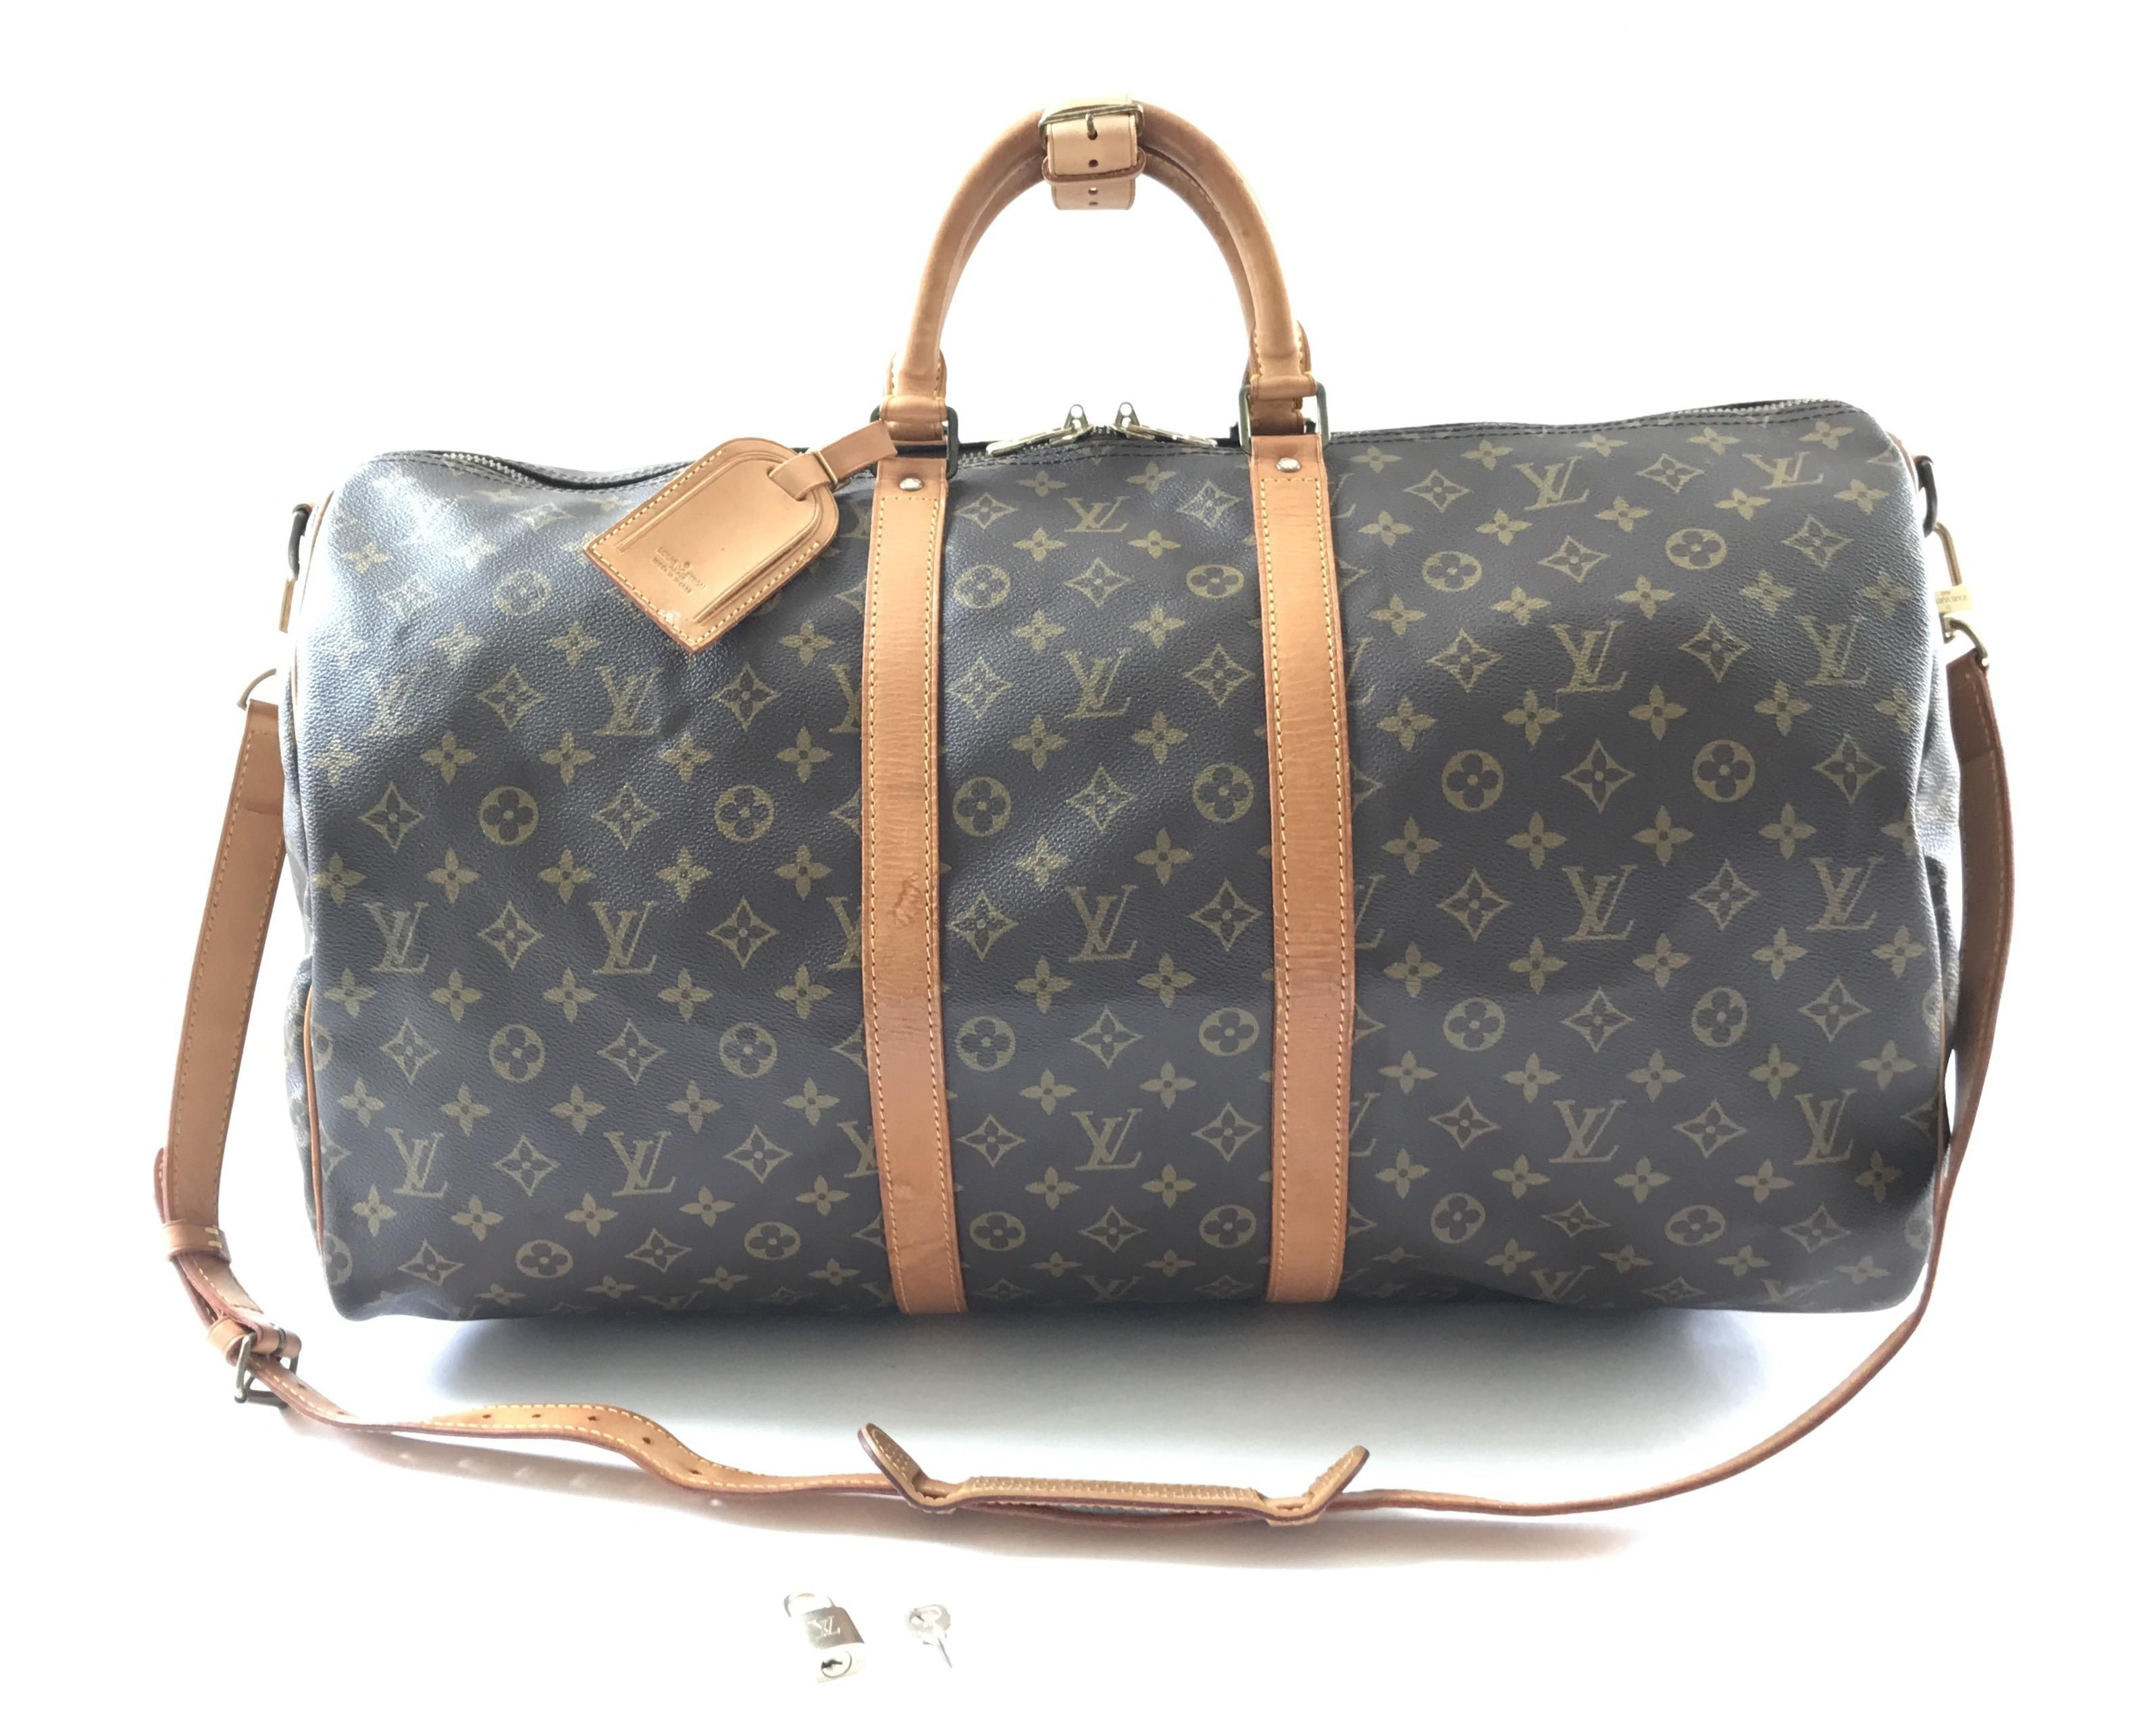 2a2d8de15733 Save 70% on the Louis Vuitton Monogram Canvas Keepall Bandouliere 55 Brown  Travel Bag! This travel bag is a top 10 member favorite on Tradesy.